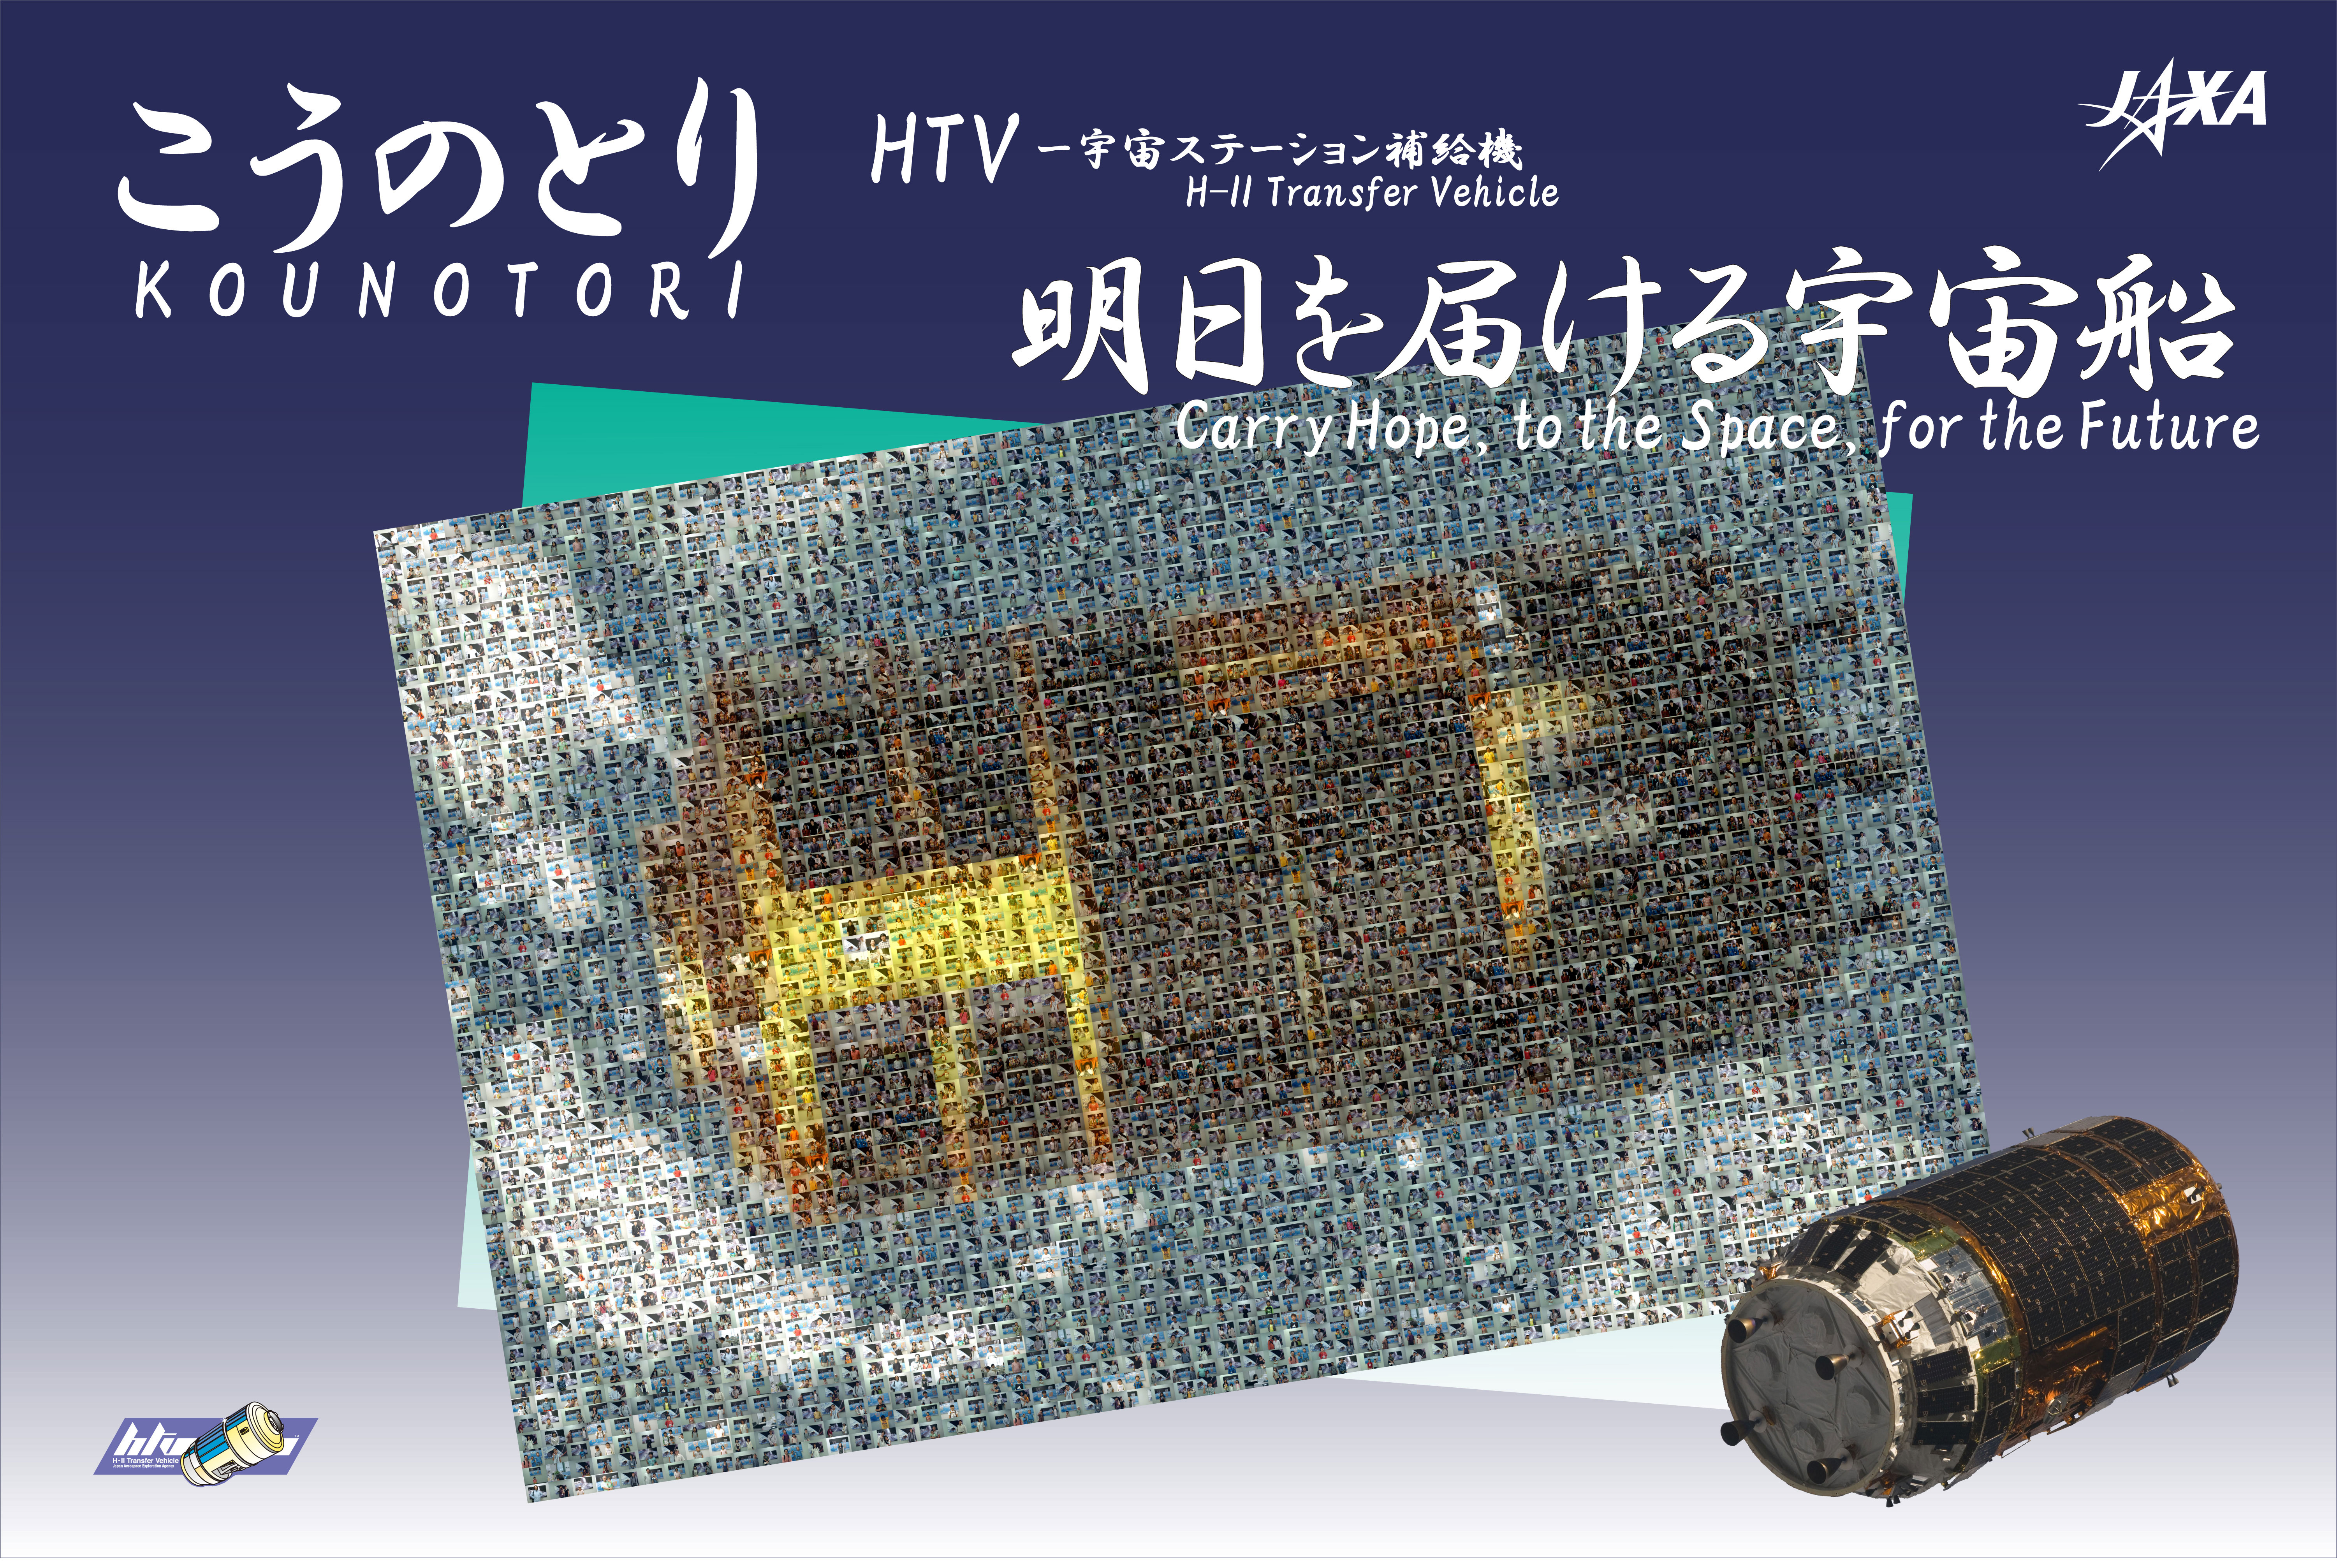 http://iss.jaxa.jp/htv/mission/htv-2/library/mosaic/images/mosaic/large_poster.jpg